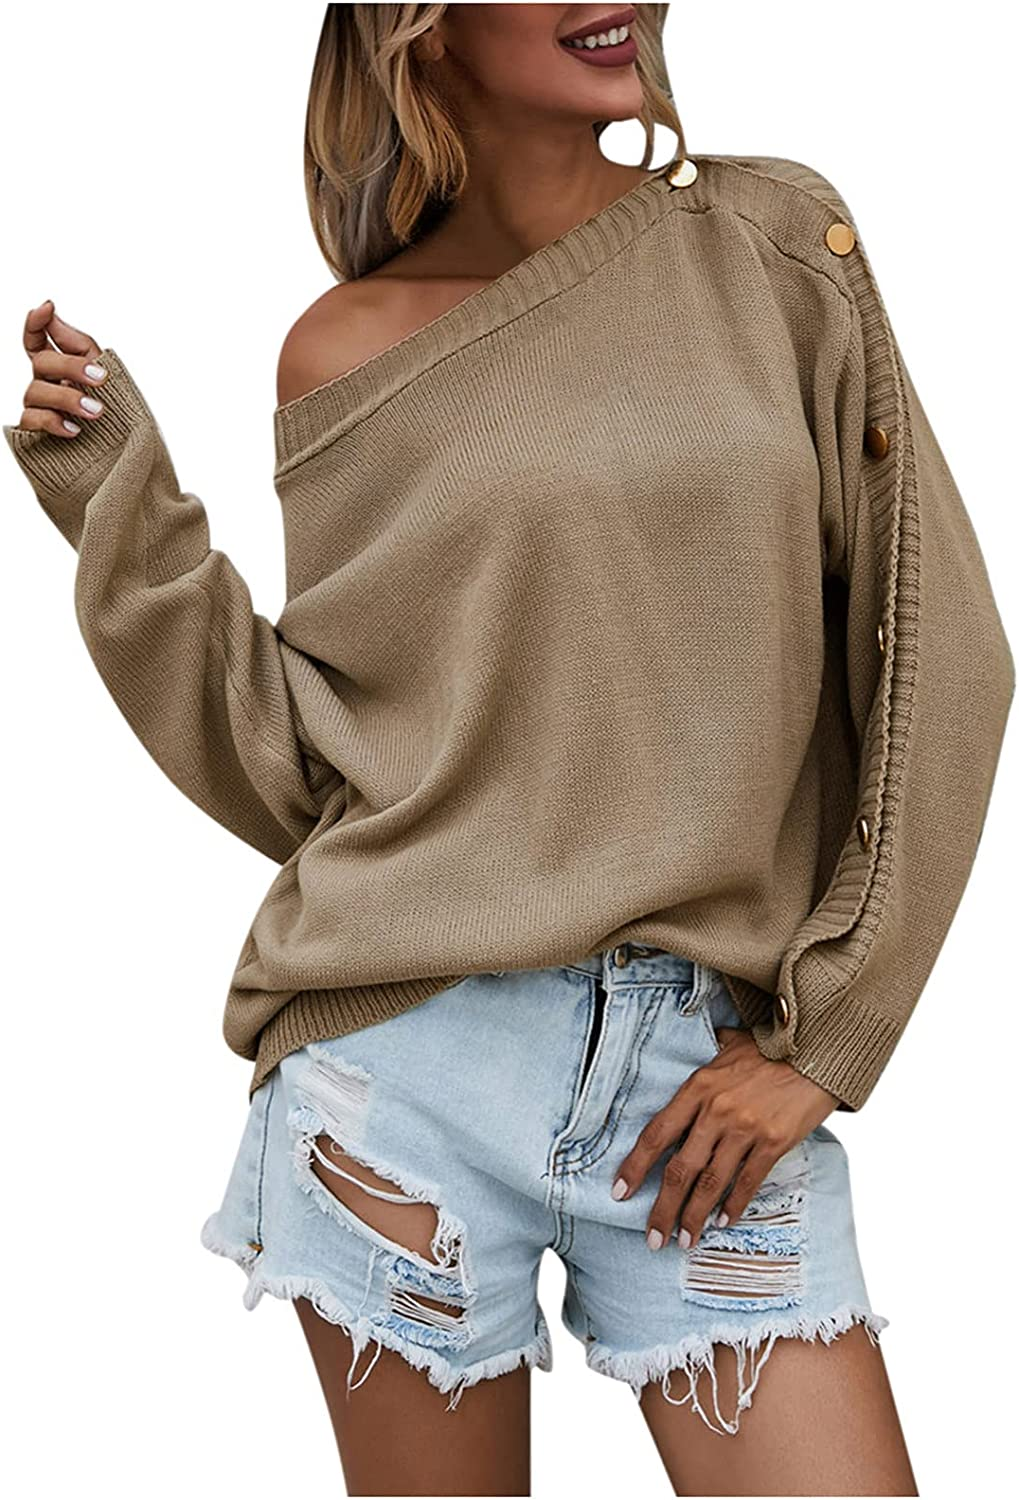 MTLZ Round Neck Long Pullover Solid Color Brown Large Size Casual Single-Breasted Knitted Sweater